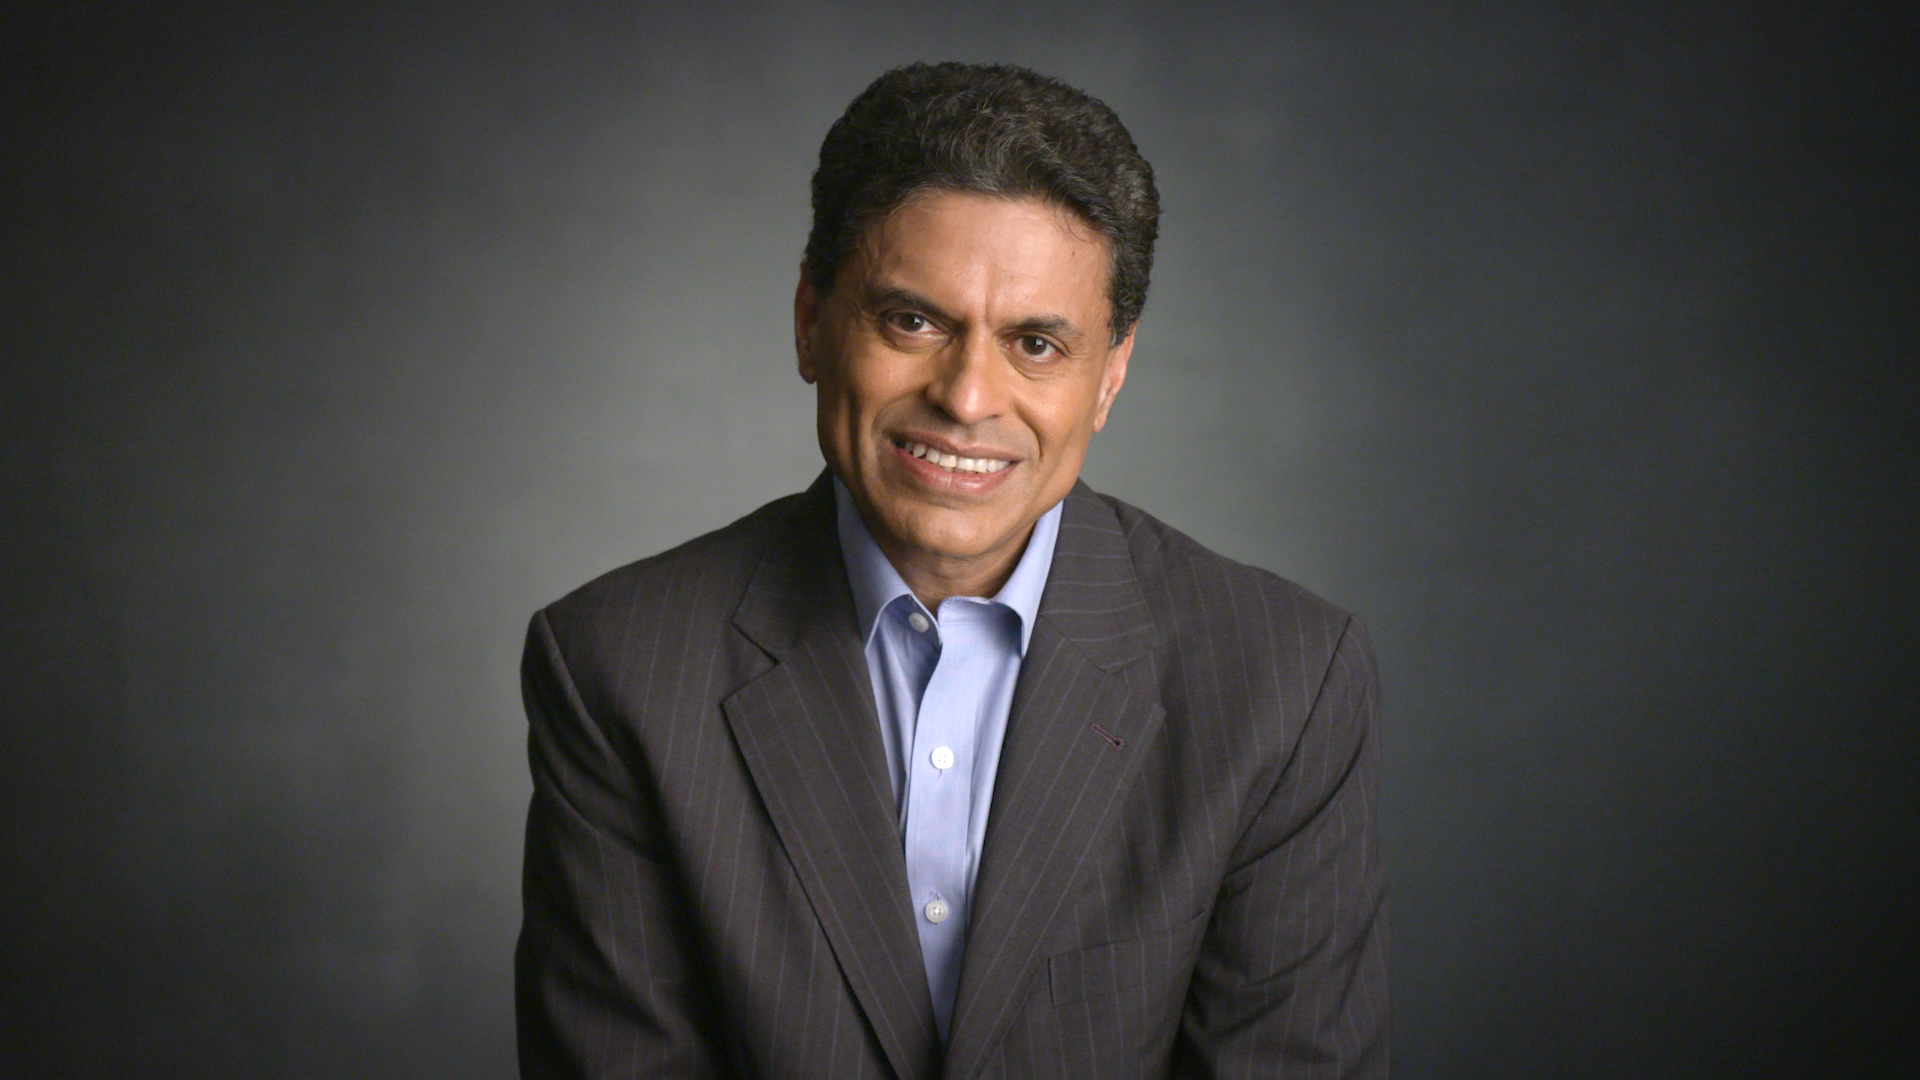 Fareed Zakaria   CNN Host, Author, & Washington Post Columnist